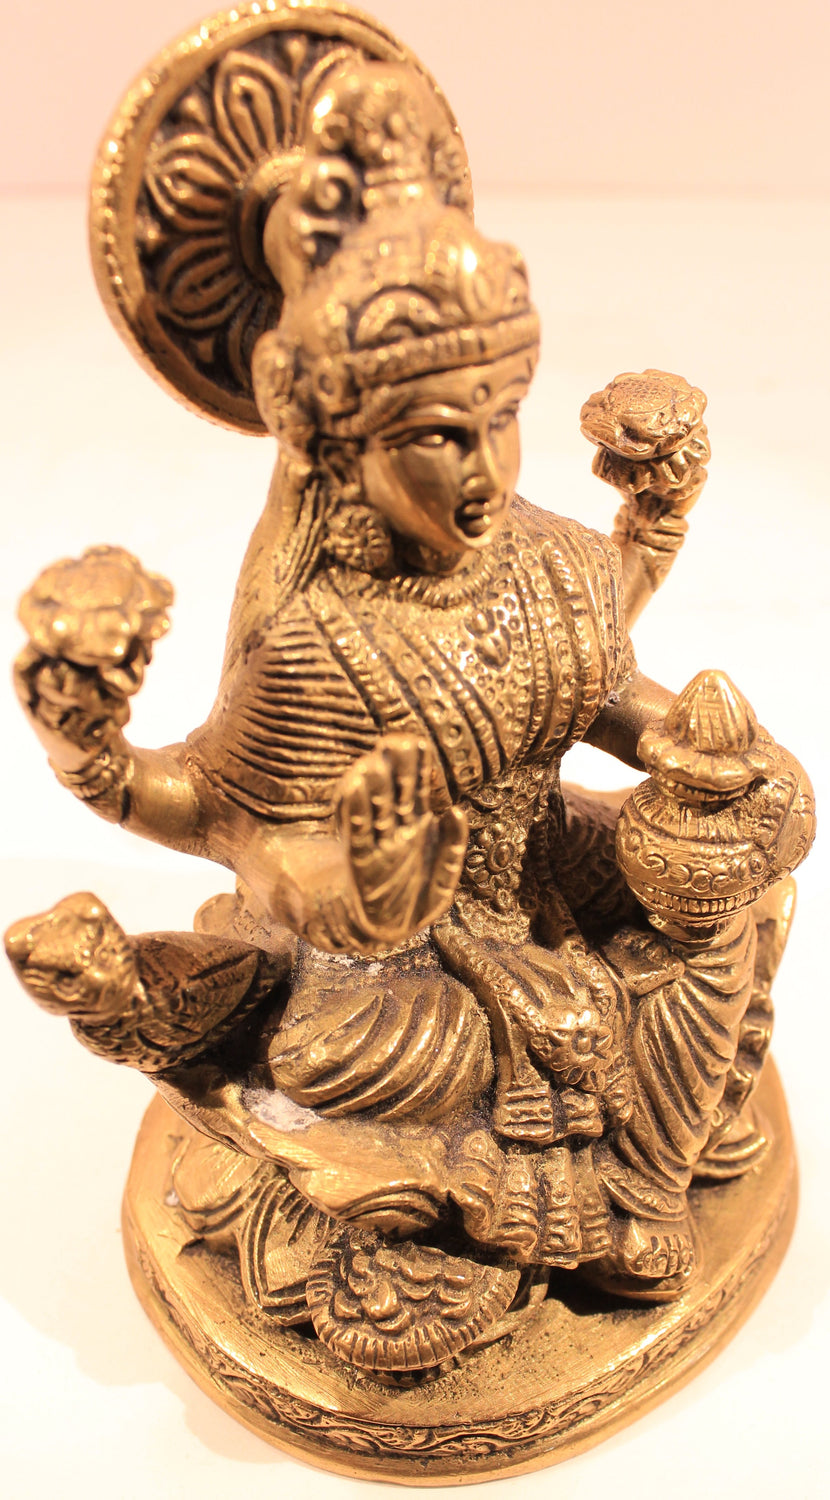 Laxmi Goddess of Wealth Statue